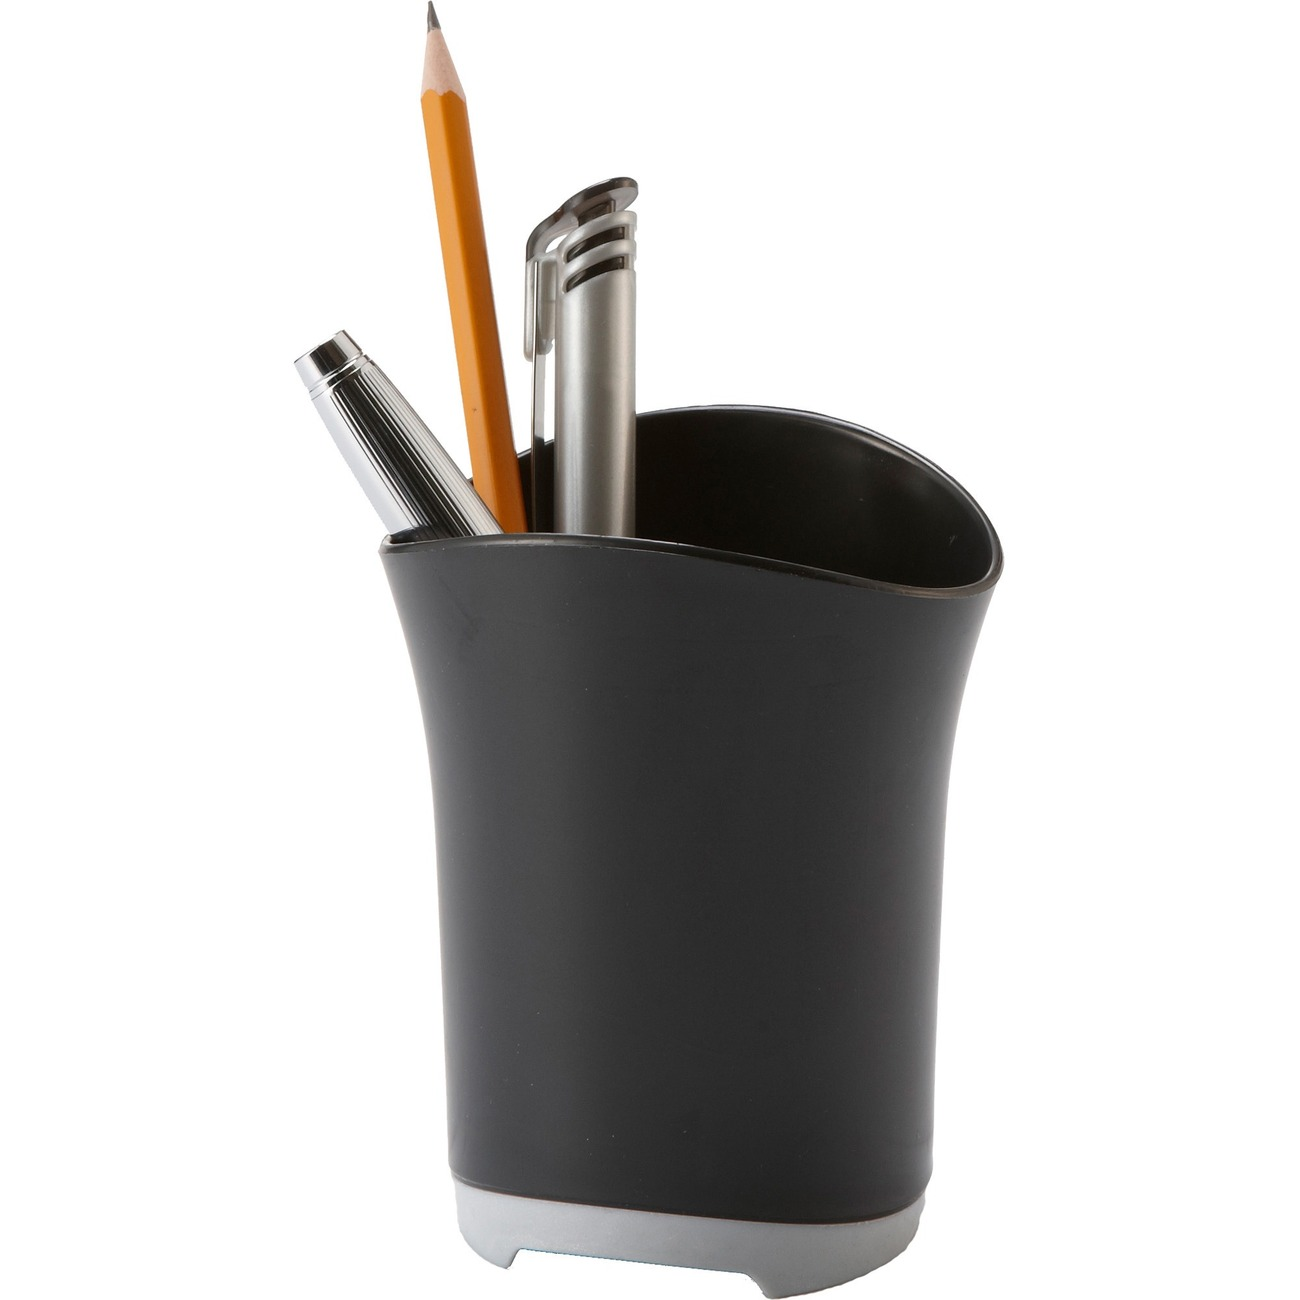 Pen Cup Holder West Coast Office Supplies Office Supplies Writing